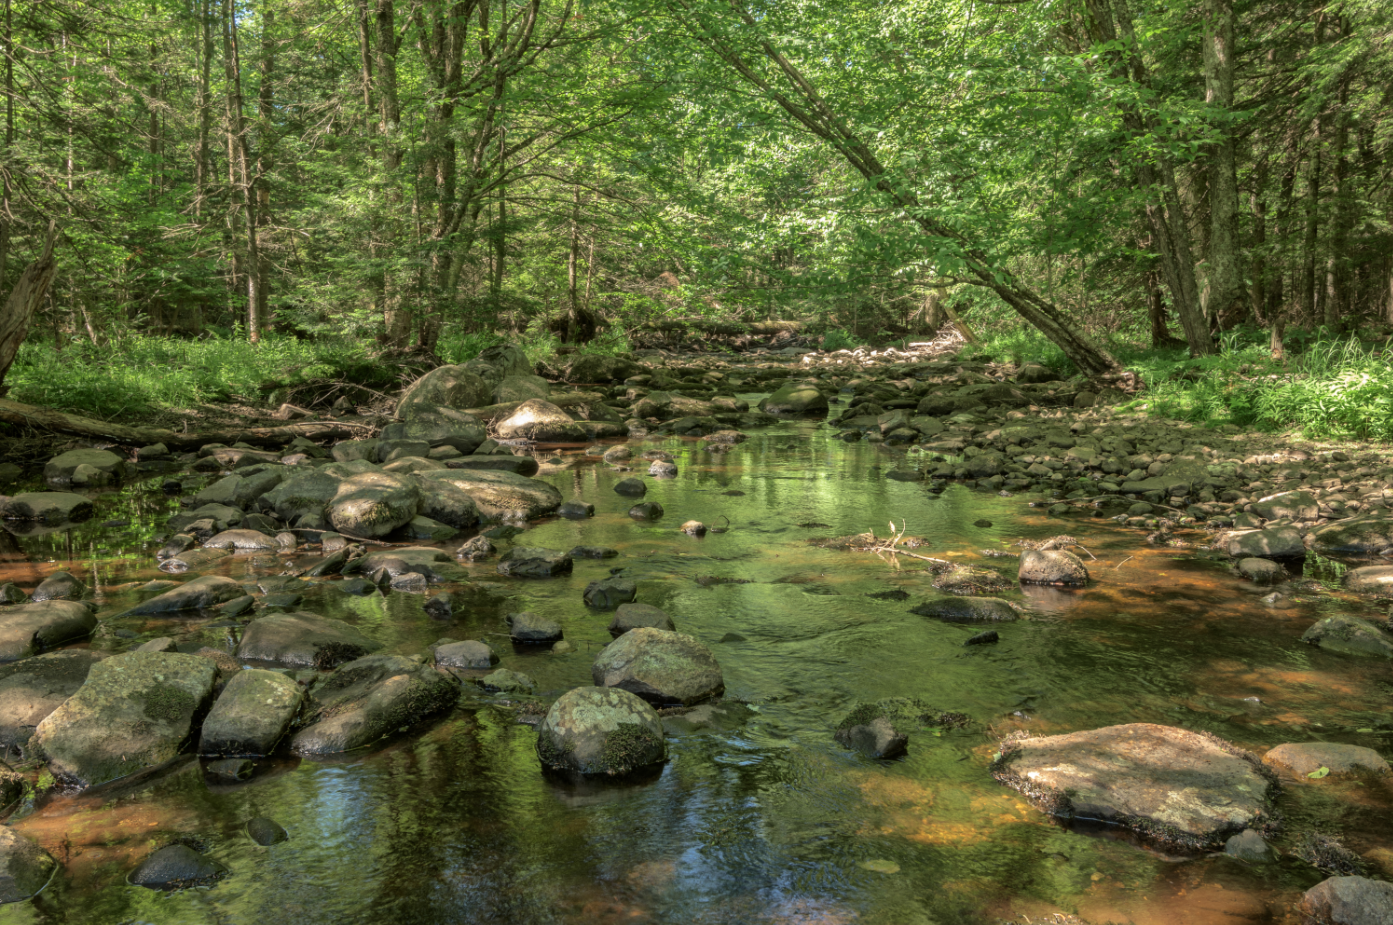 A photograph of Hans Creek which runs through the newly protected property.